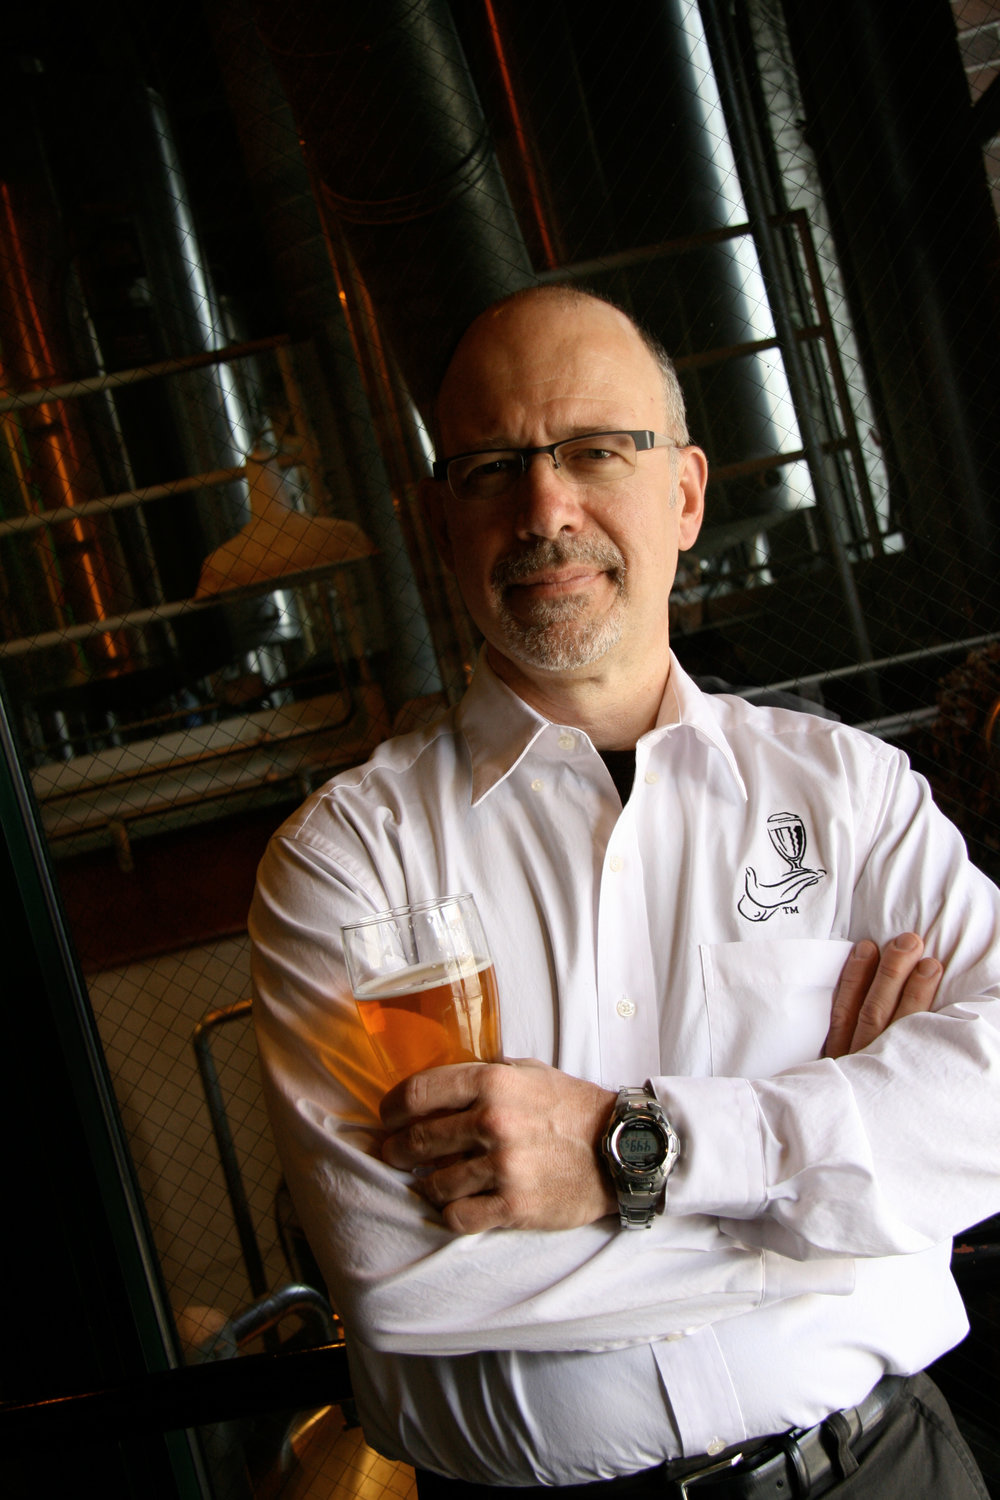 RAY DANIELS —Founder and Director of the Cicerone Certification Program